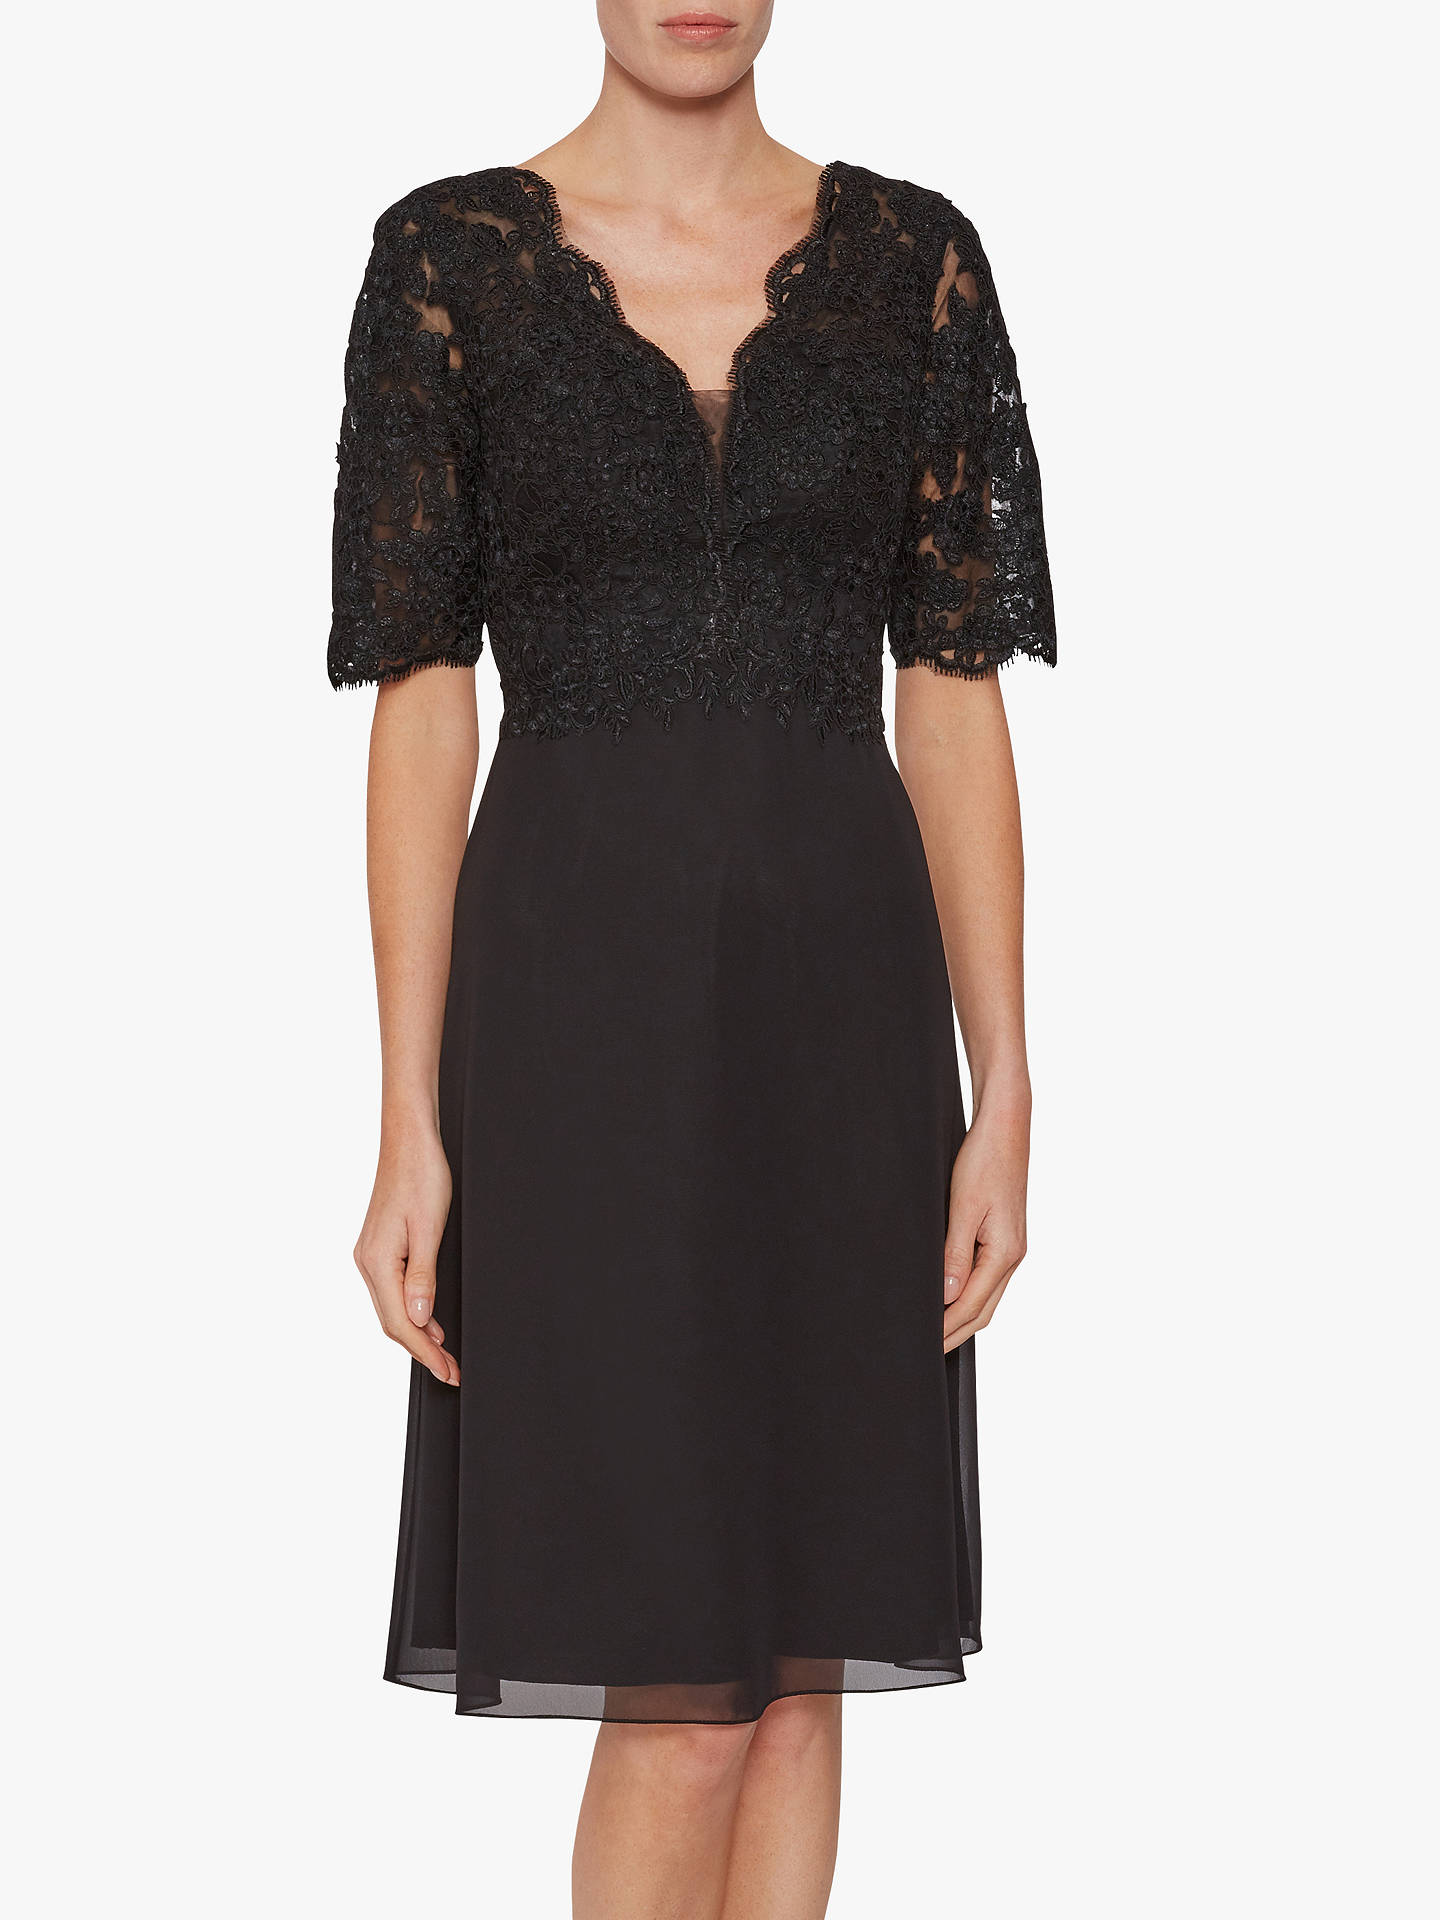 BuyGina Bacconi Fantasia Lace Bodice Dress, Black, 10 Online at johnlewis.com